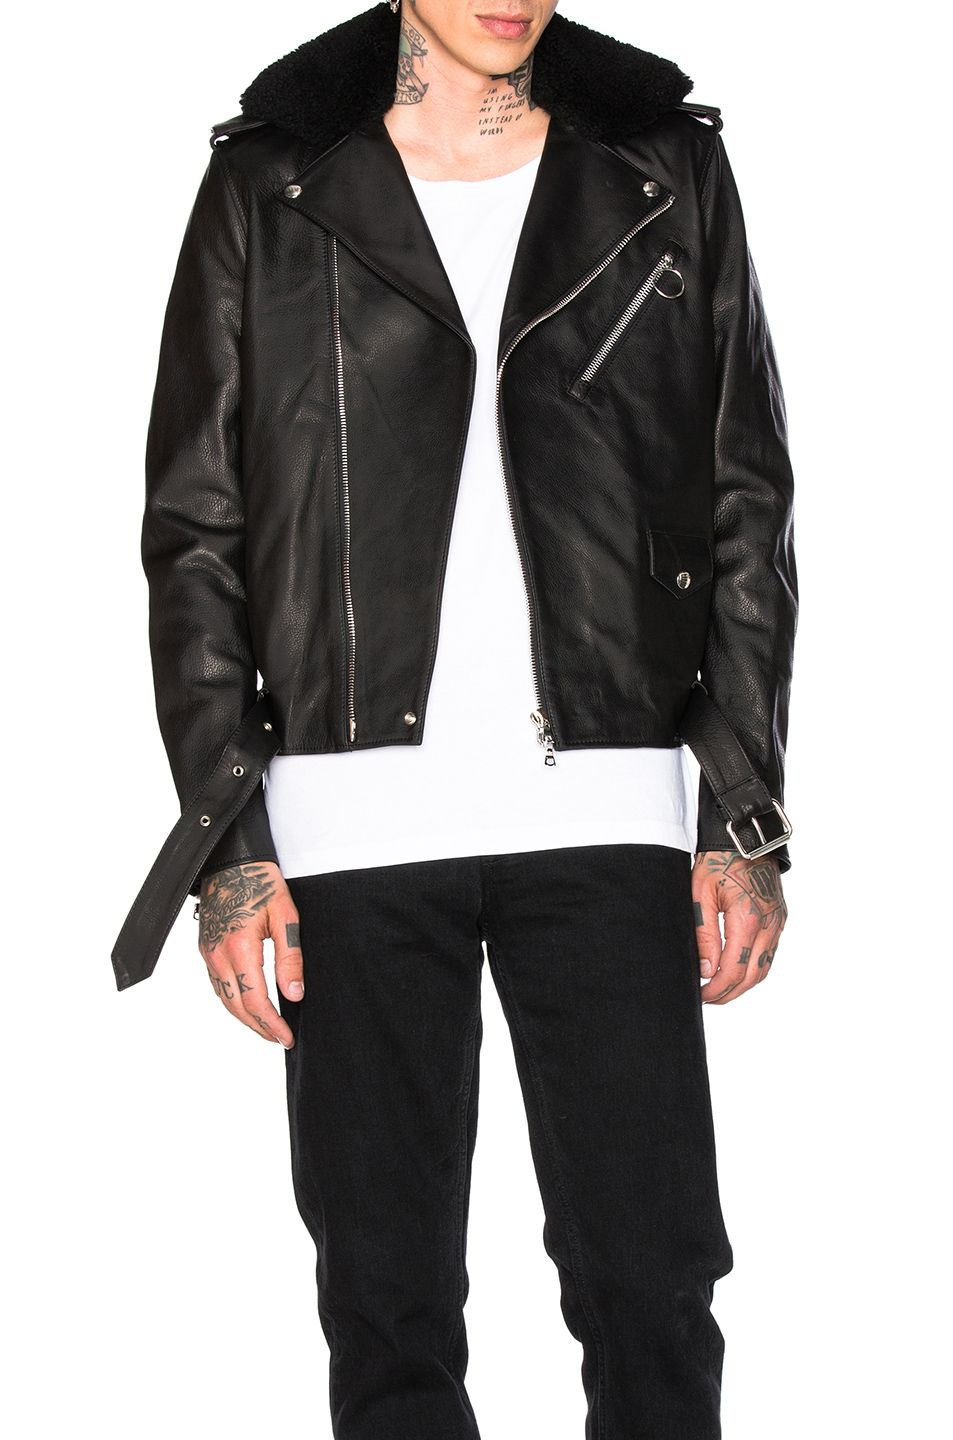 acne leather jacket mens